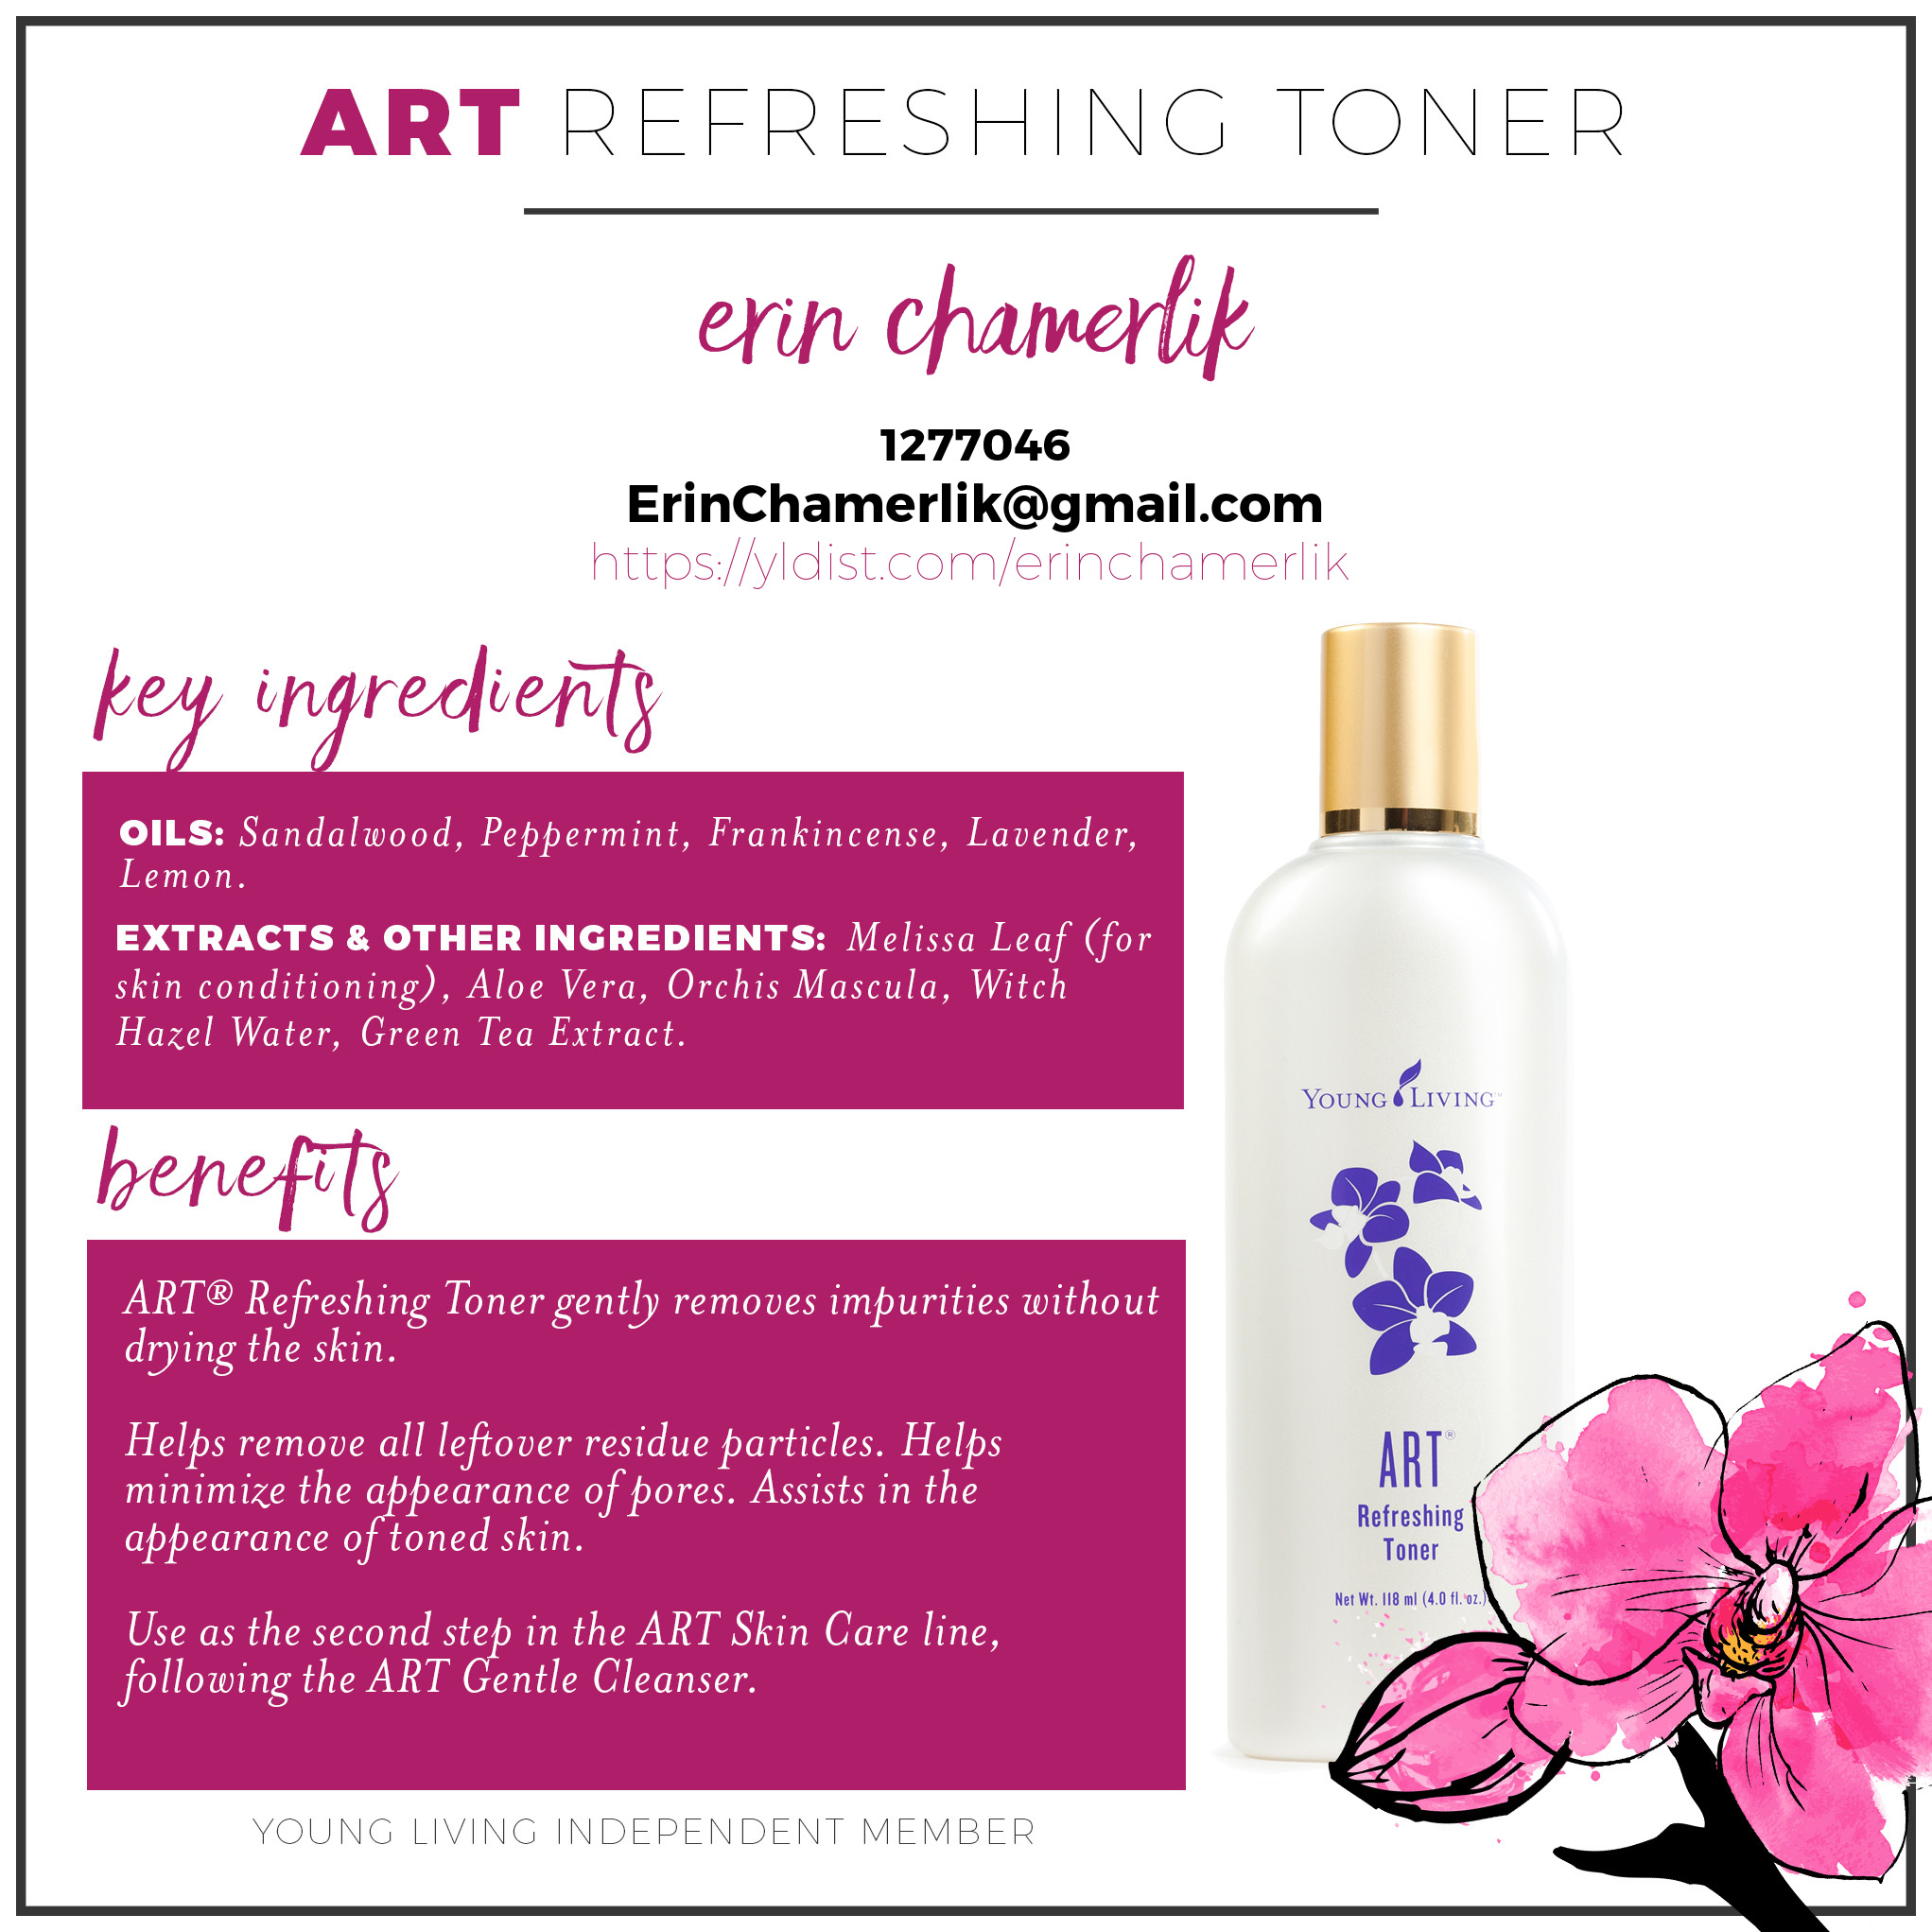 11-ART-Refreshing-Toner